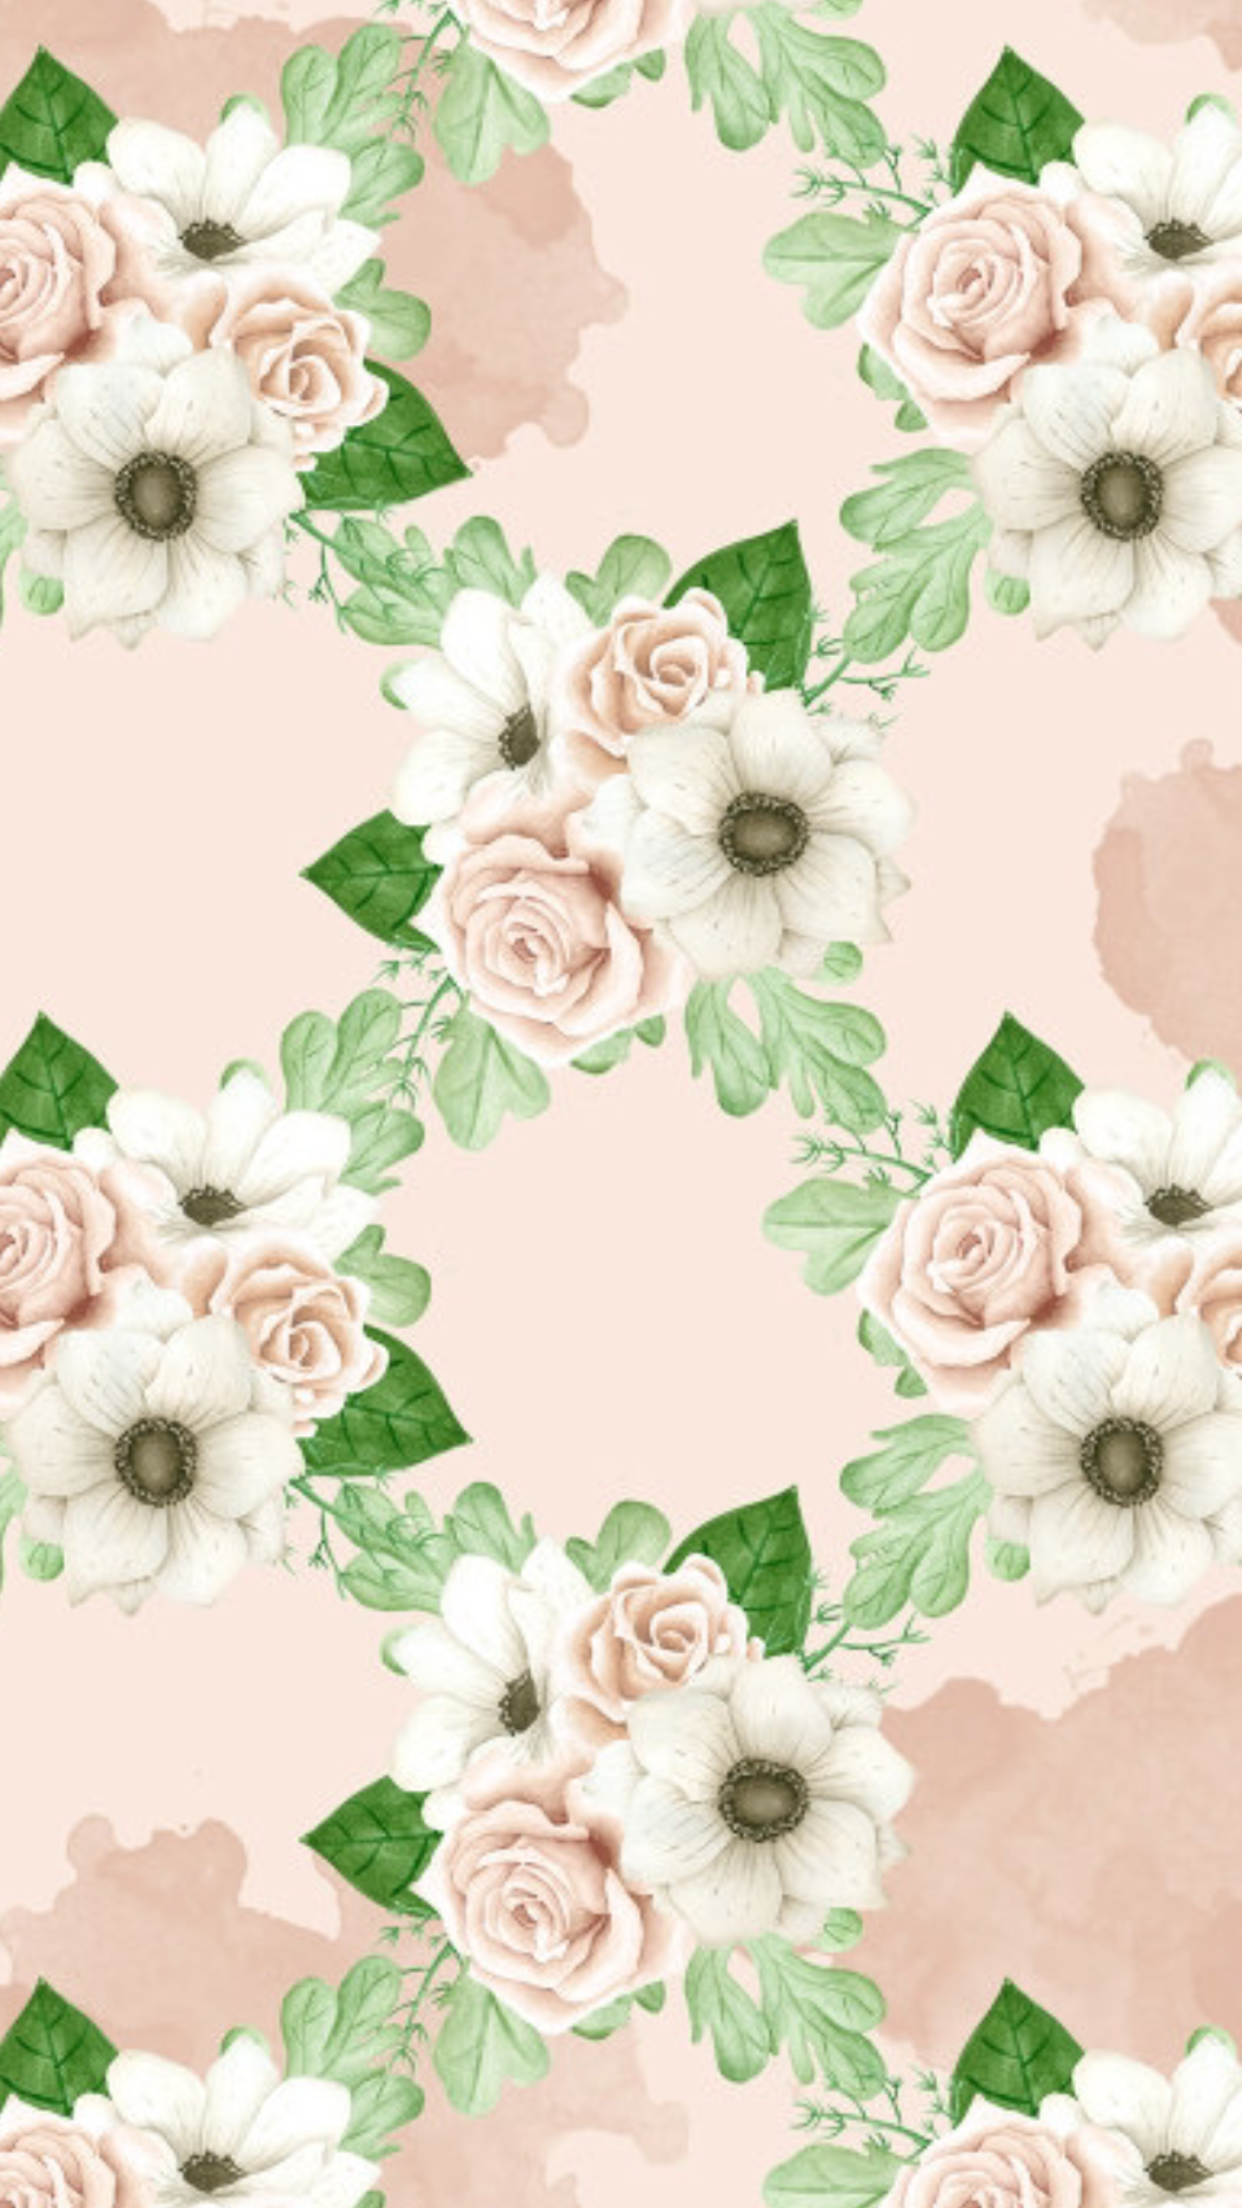 Pin By Symer Cross On Cute Wallies Imagenes Png Flores Blancas